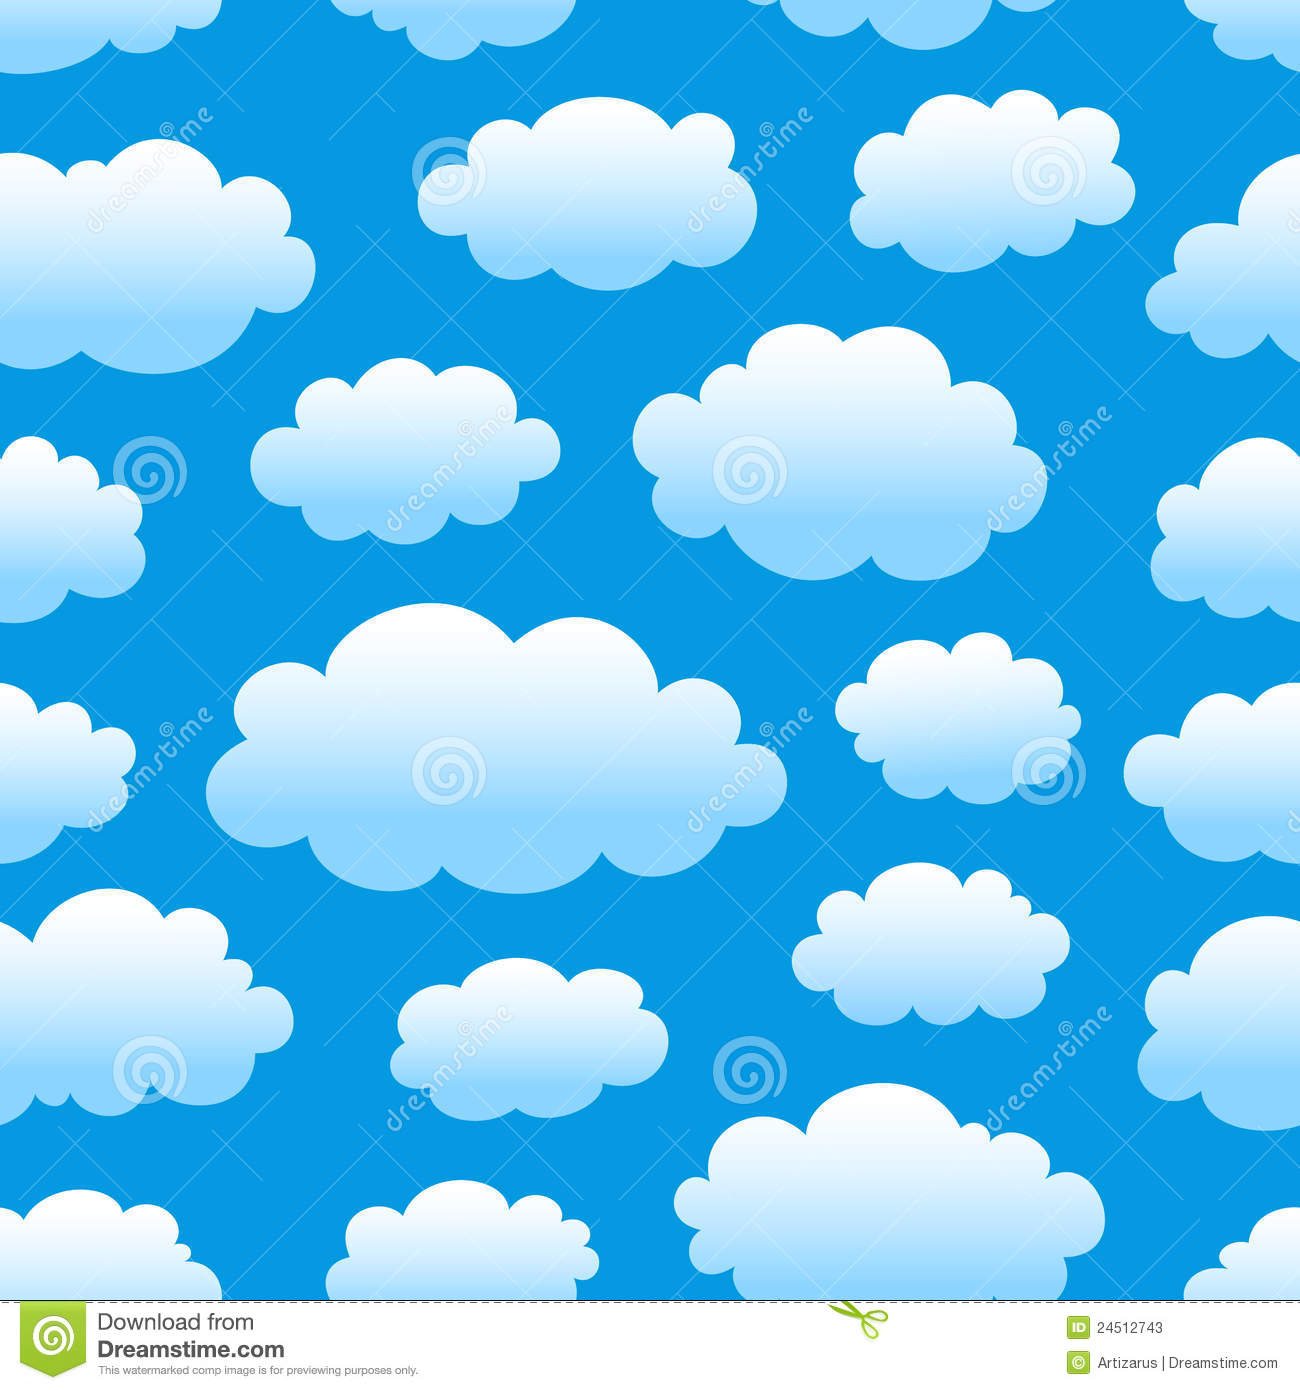 Cloudy Sky Pattern Stock Photos - Image: 24512743